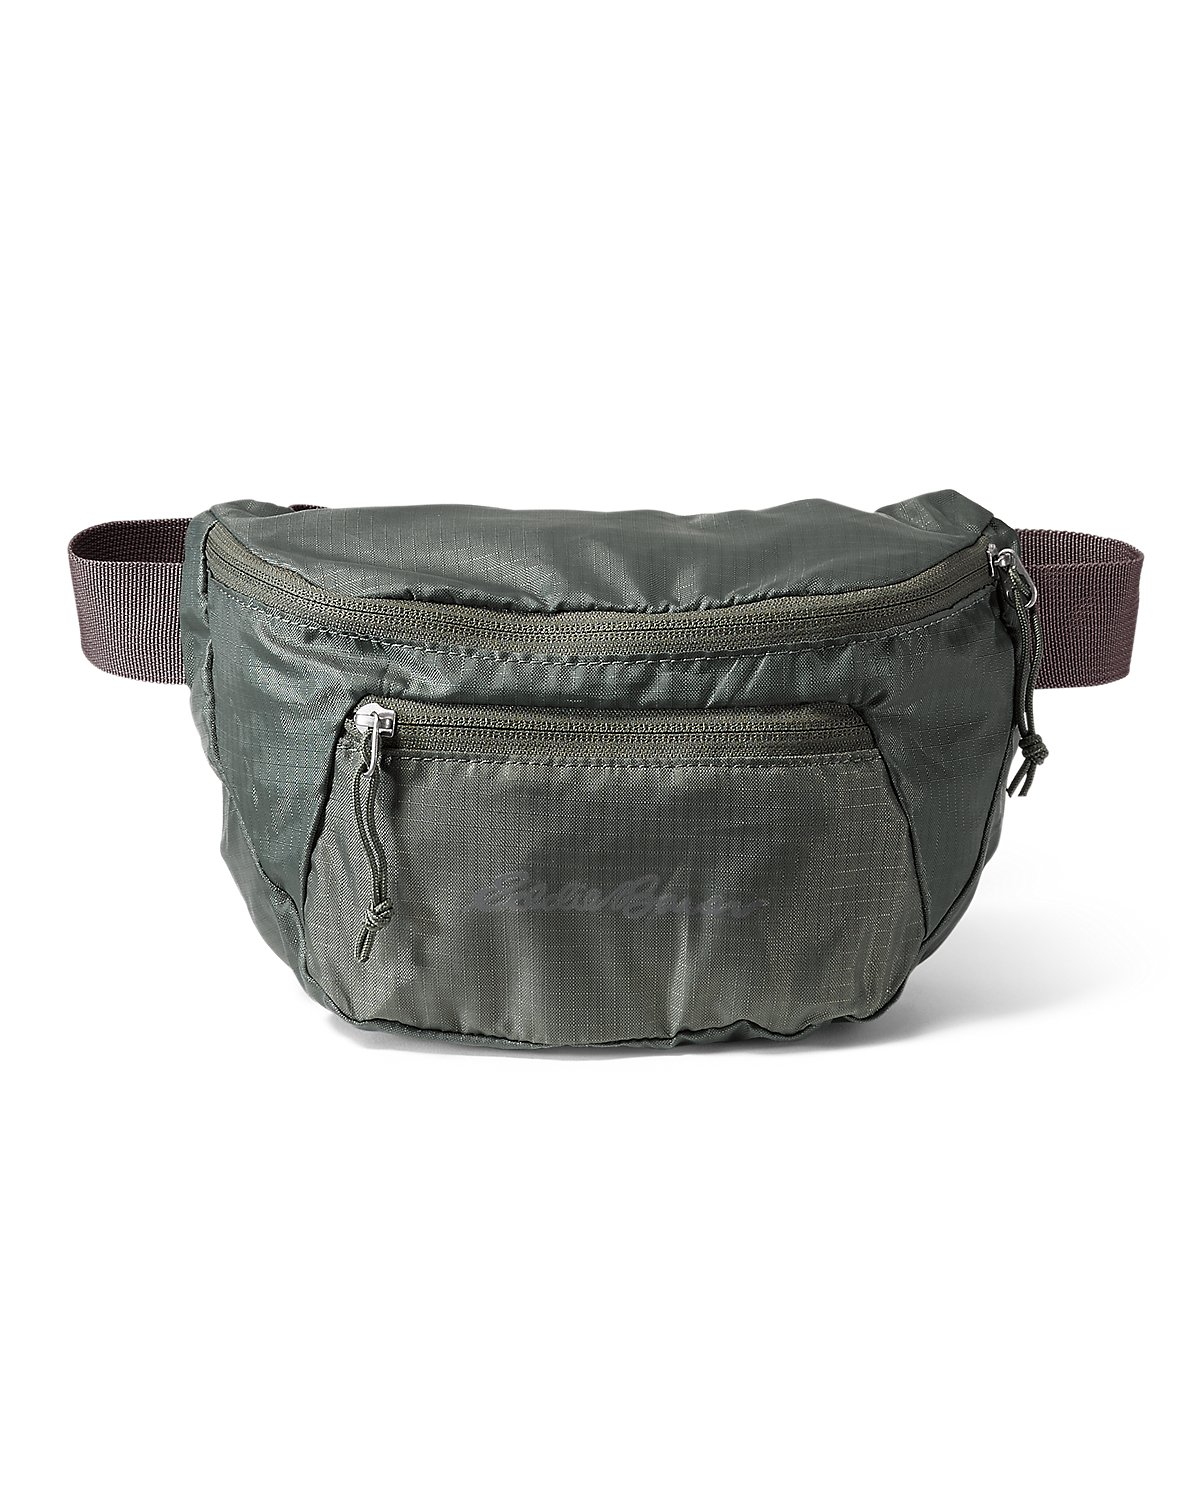 Eddie Bauer Stowaway Packable Waistpack (Multiple Colors)